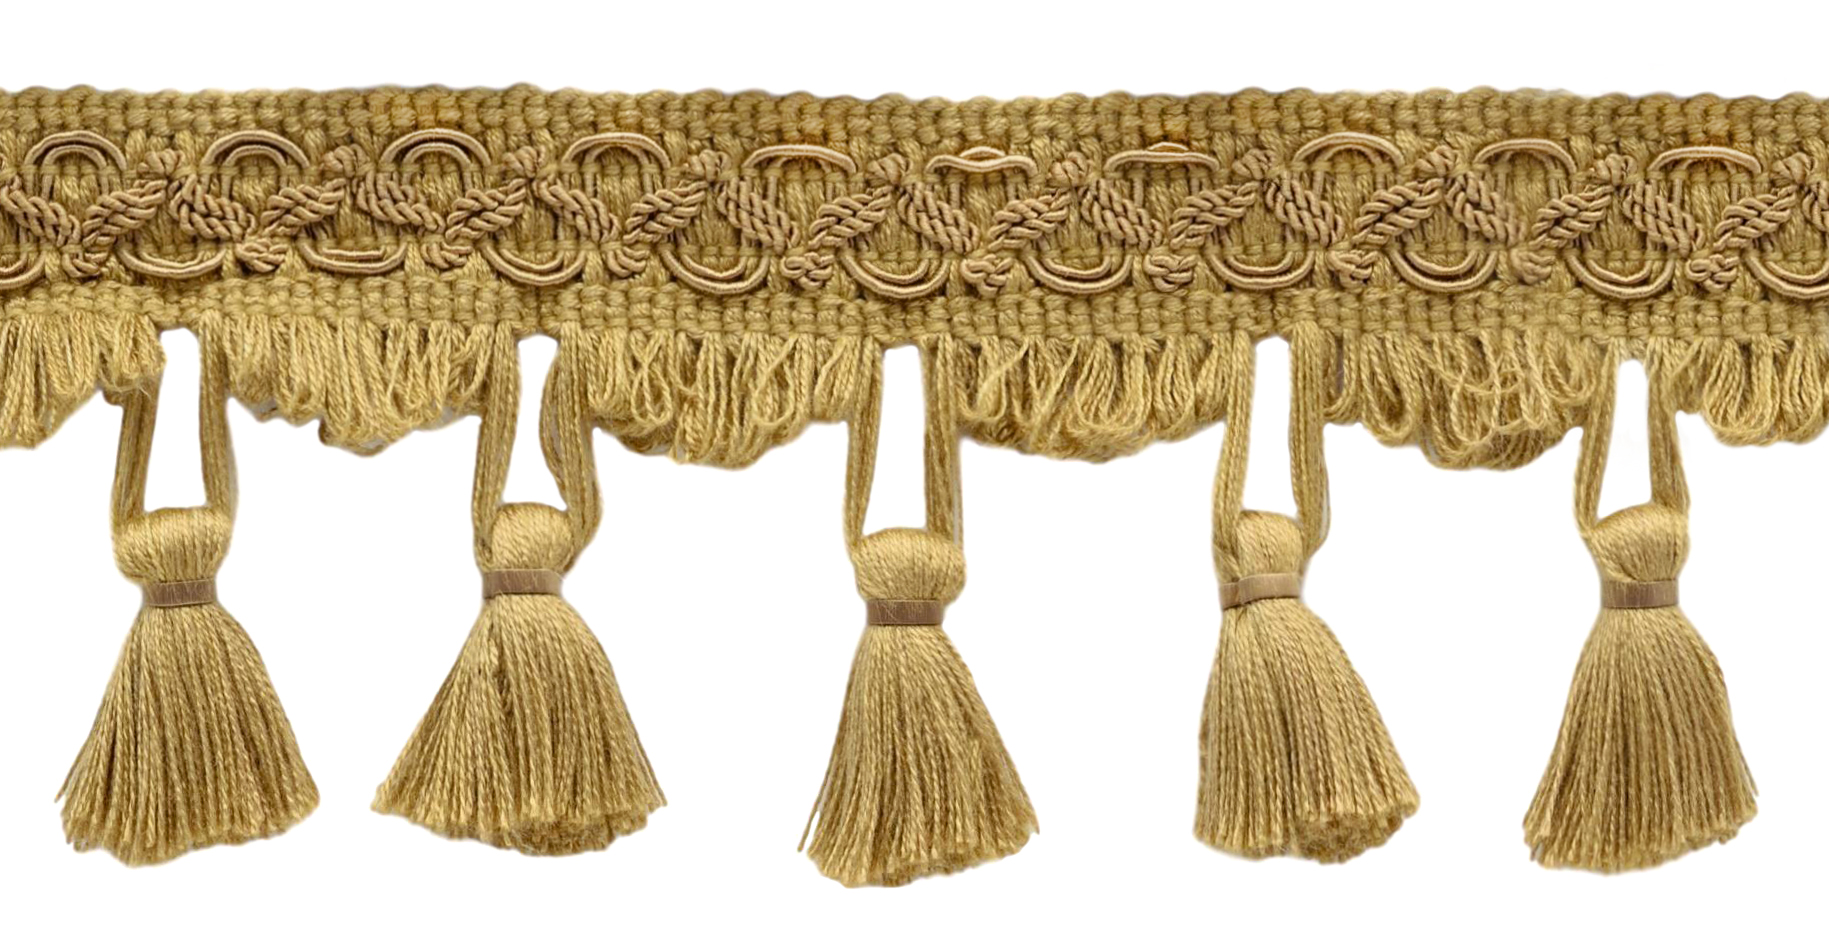 A1 D/ÉCOPRO 6 Yard Value Pack 2.5 Inch White Tassel Fringe Trim Basic Trim Collection Style# TFC0225 Color: First Snow 18 Ft // 5.5 Meters